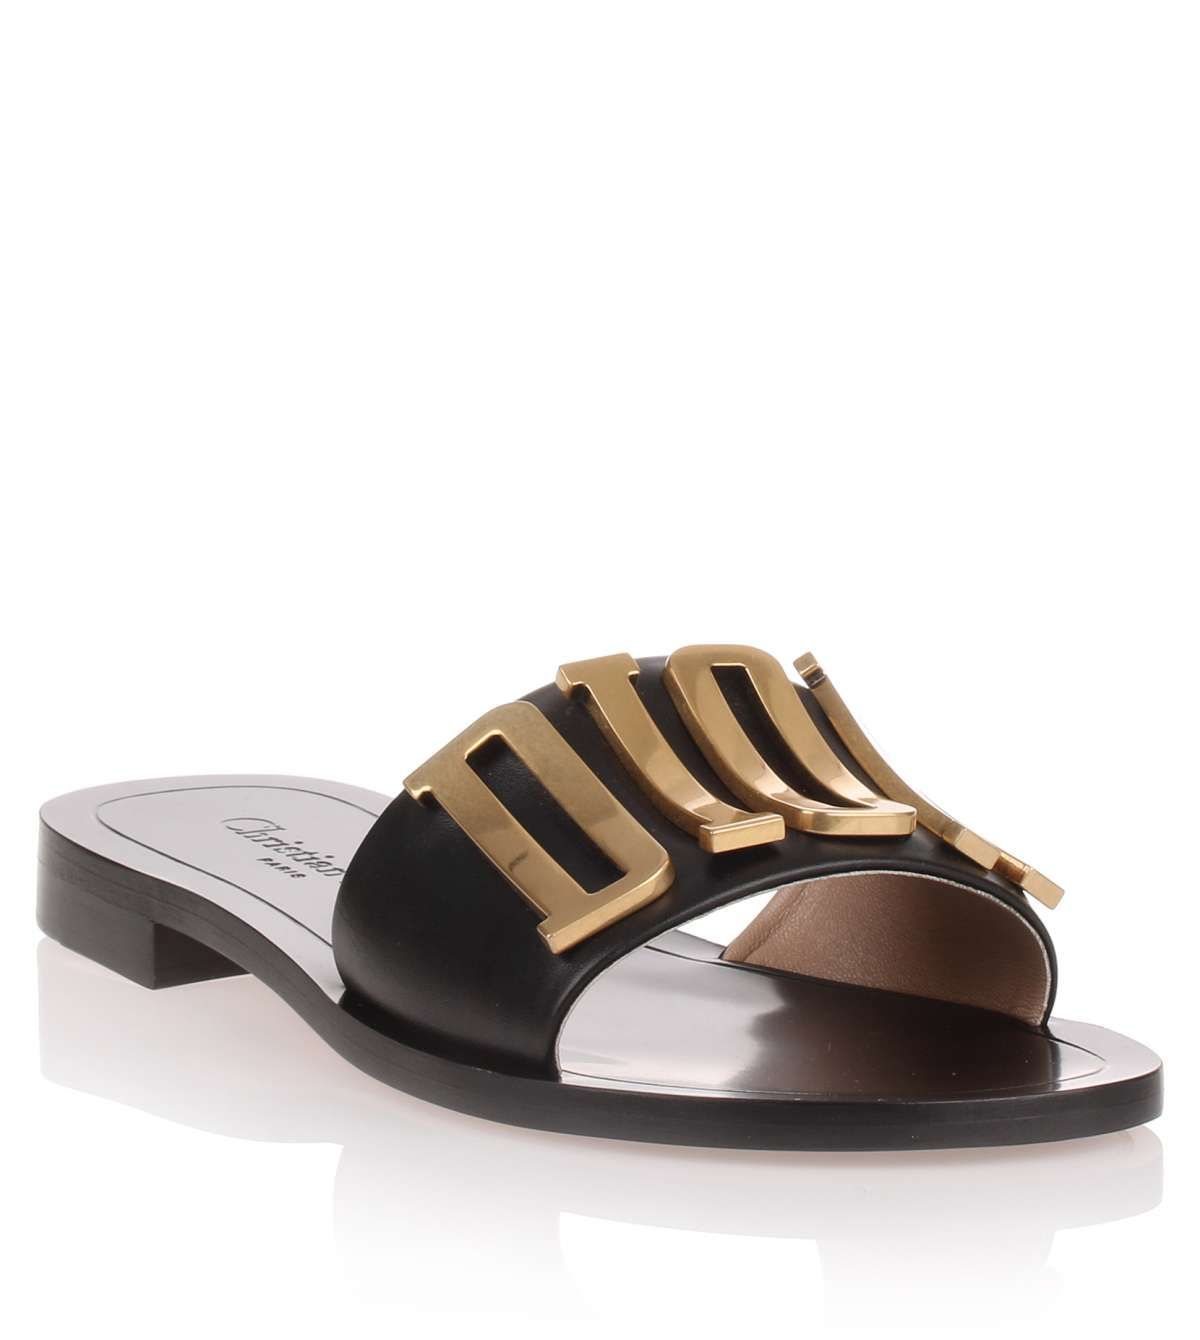 eabf16a2c7a Black leather slide sandal with  DIOR  logo detail from Dior. The  Diorevolution has an antique style brass  DIOR  logo on the toe and a slide  design.